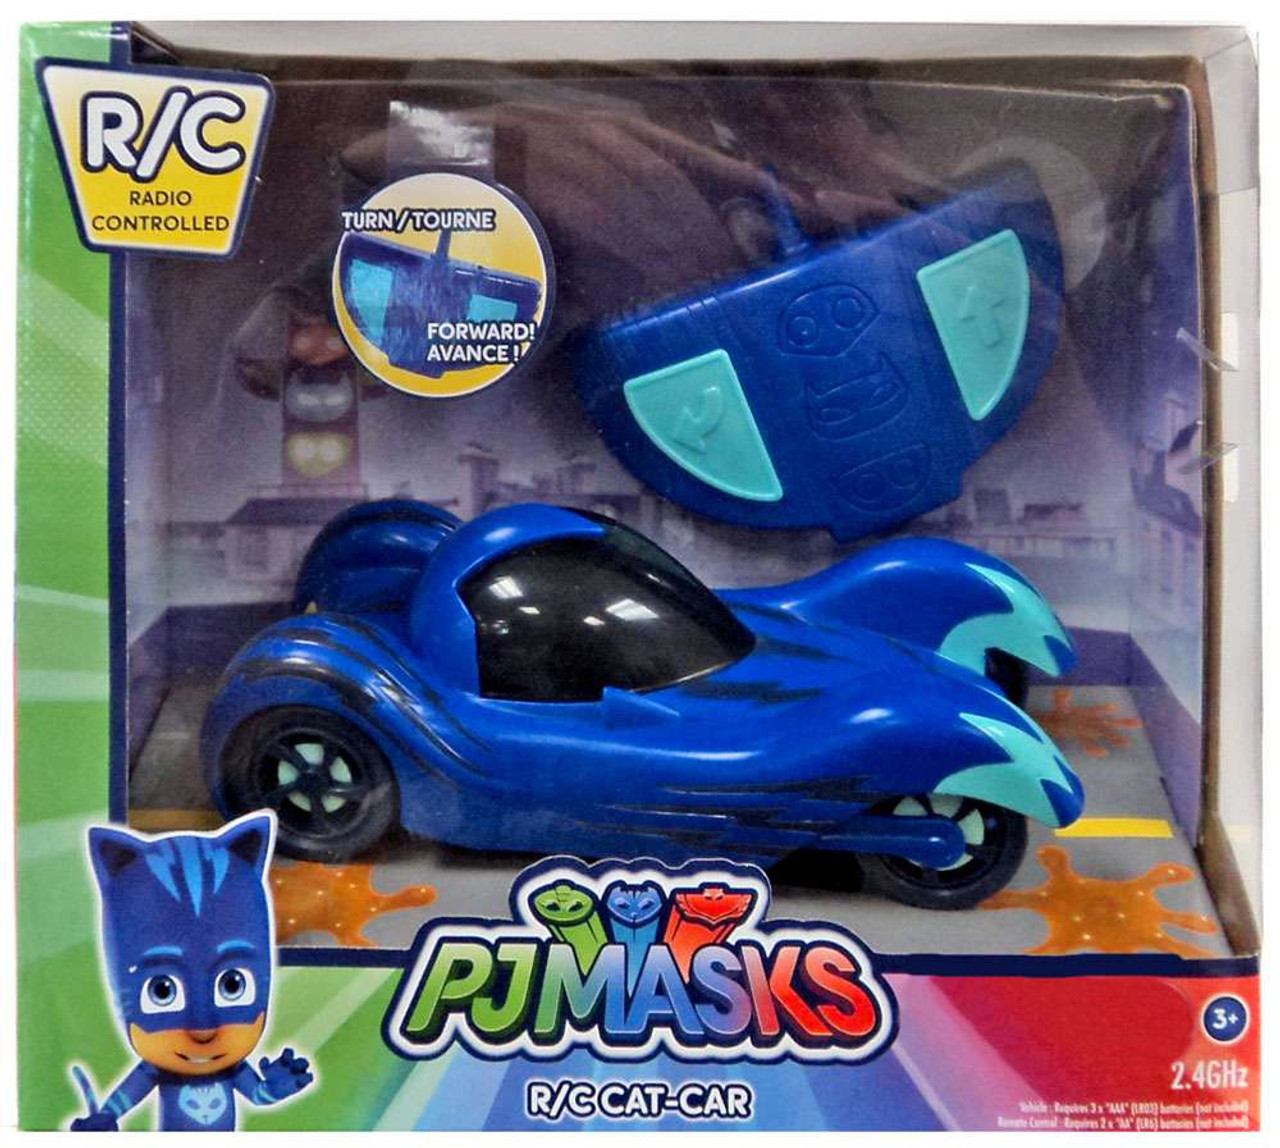 pre owned rc cars with Disney Junior Pj Masks Cat Car Rc Vehicle on Italeri Reefer Trailer 40 Foot Classic Plastic Model Kit further Tamiya 35076 Sas British Pink Panther Land Rover Plastic Model Kit further Rock Bouncing 500 Hp Buggy Climbs Sheer Cliff 212619299 besides Lexus Rc F Gt3 Racing Concept Geneva 2014 additionally Usedcars lexus co.